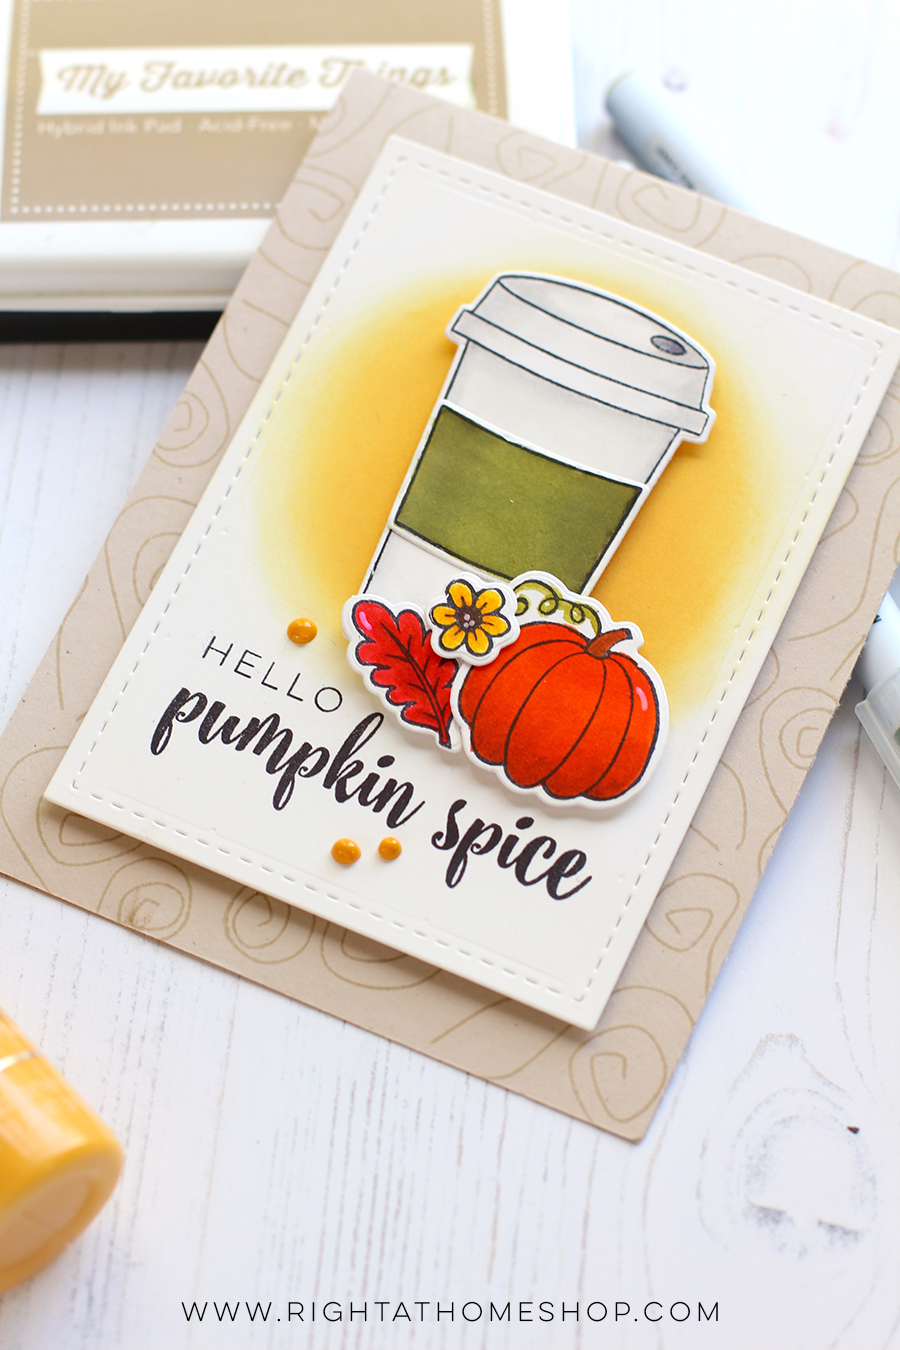 Hello Pumpkin Spice Card // Fall Coffee Lovers Blog Hop Fall 2017 - rightathomeshop.com/blog